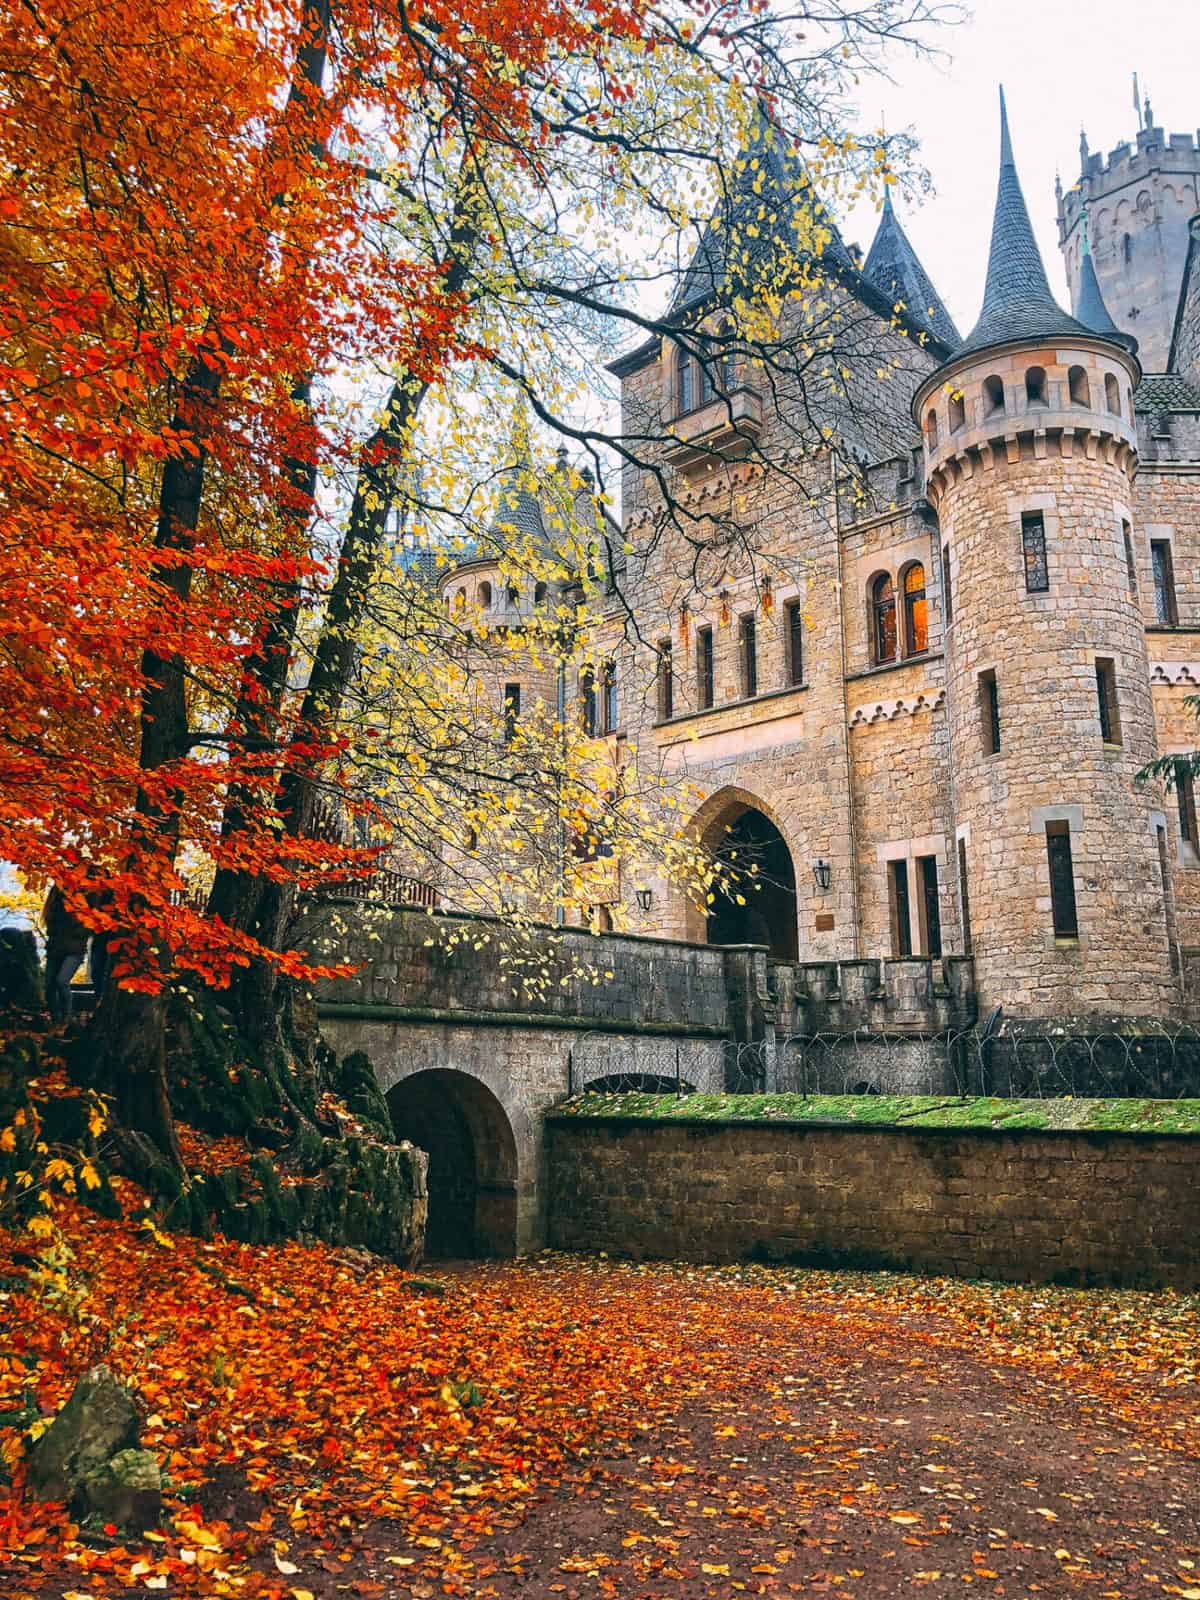 A bridge leading to an old stone castle with autumn leave trees